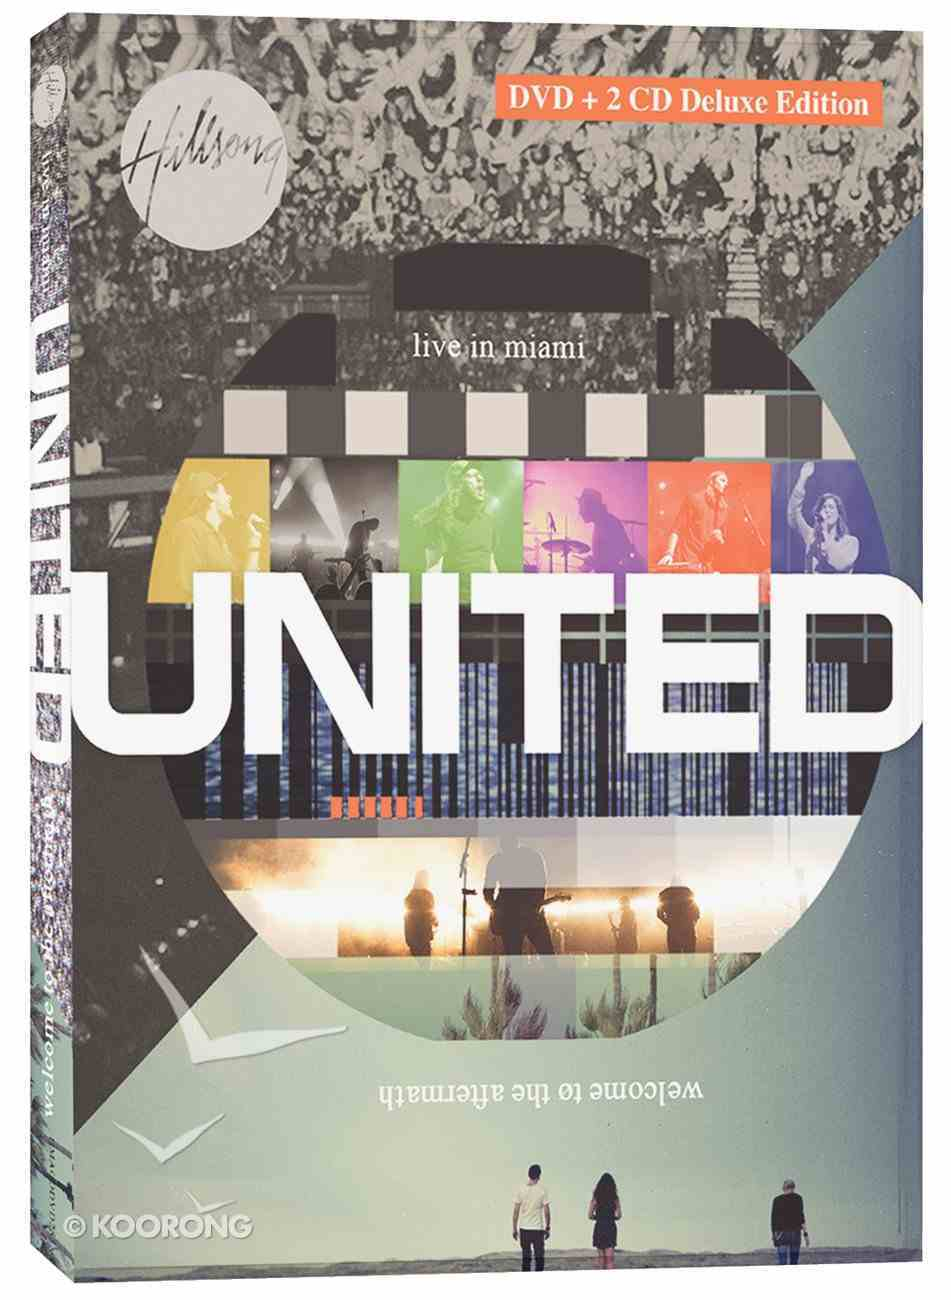 Hillsong United 2012: Live in Miami (Deluxe Dvd + 2 Cd) CD